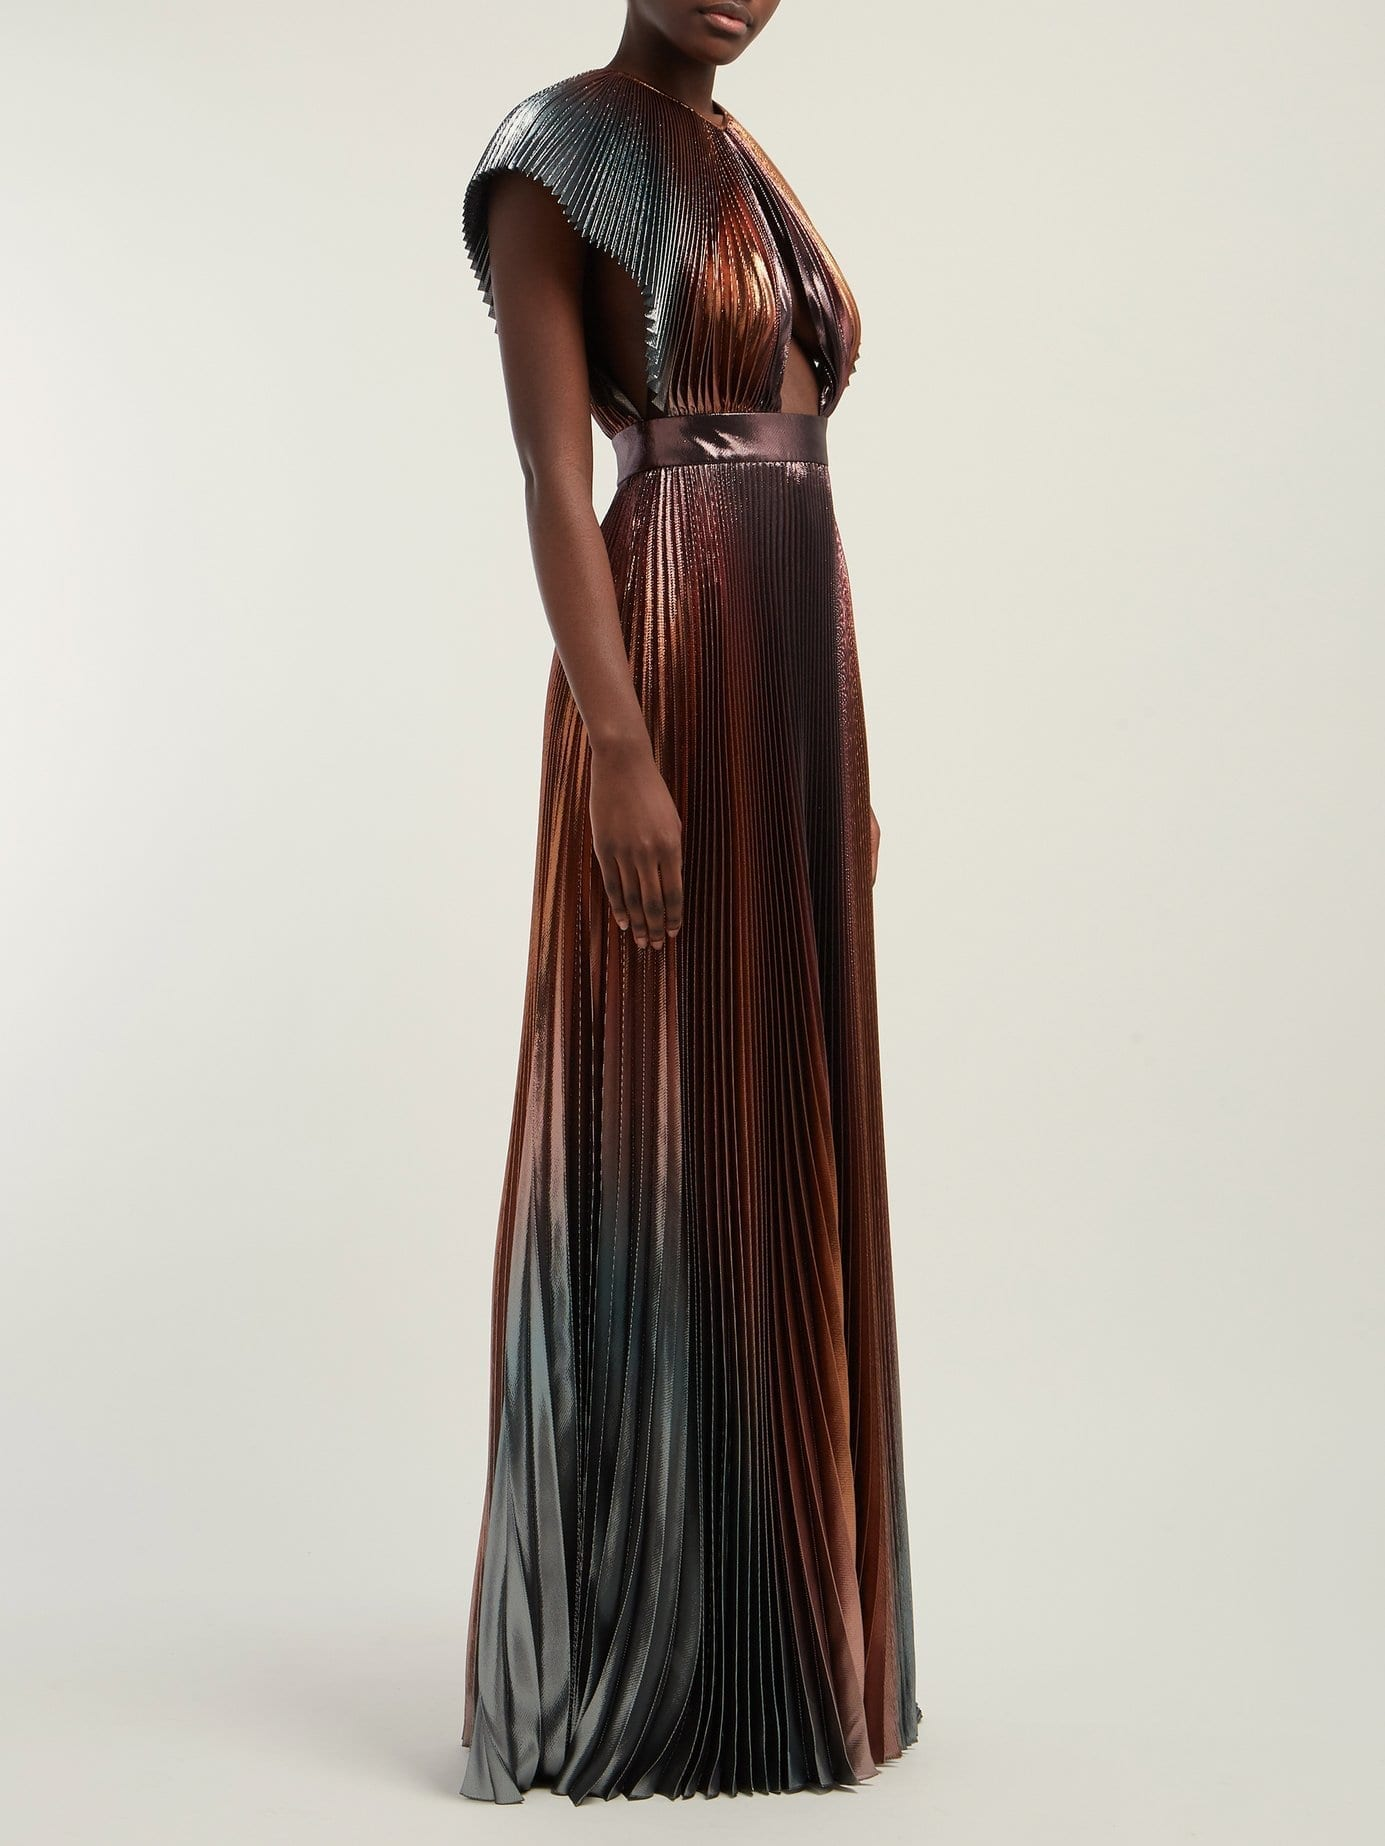 GIVENCHY Metallic Pleated Silk-blend Metallic Bronze Gown